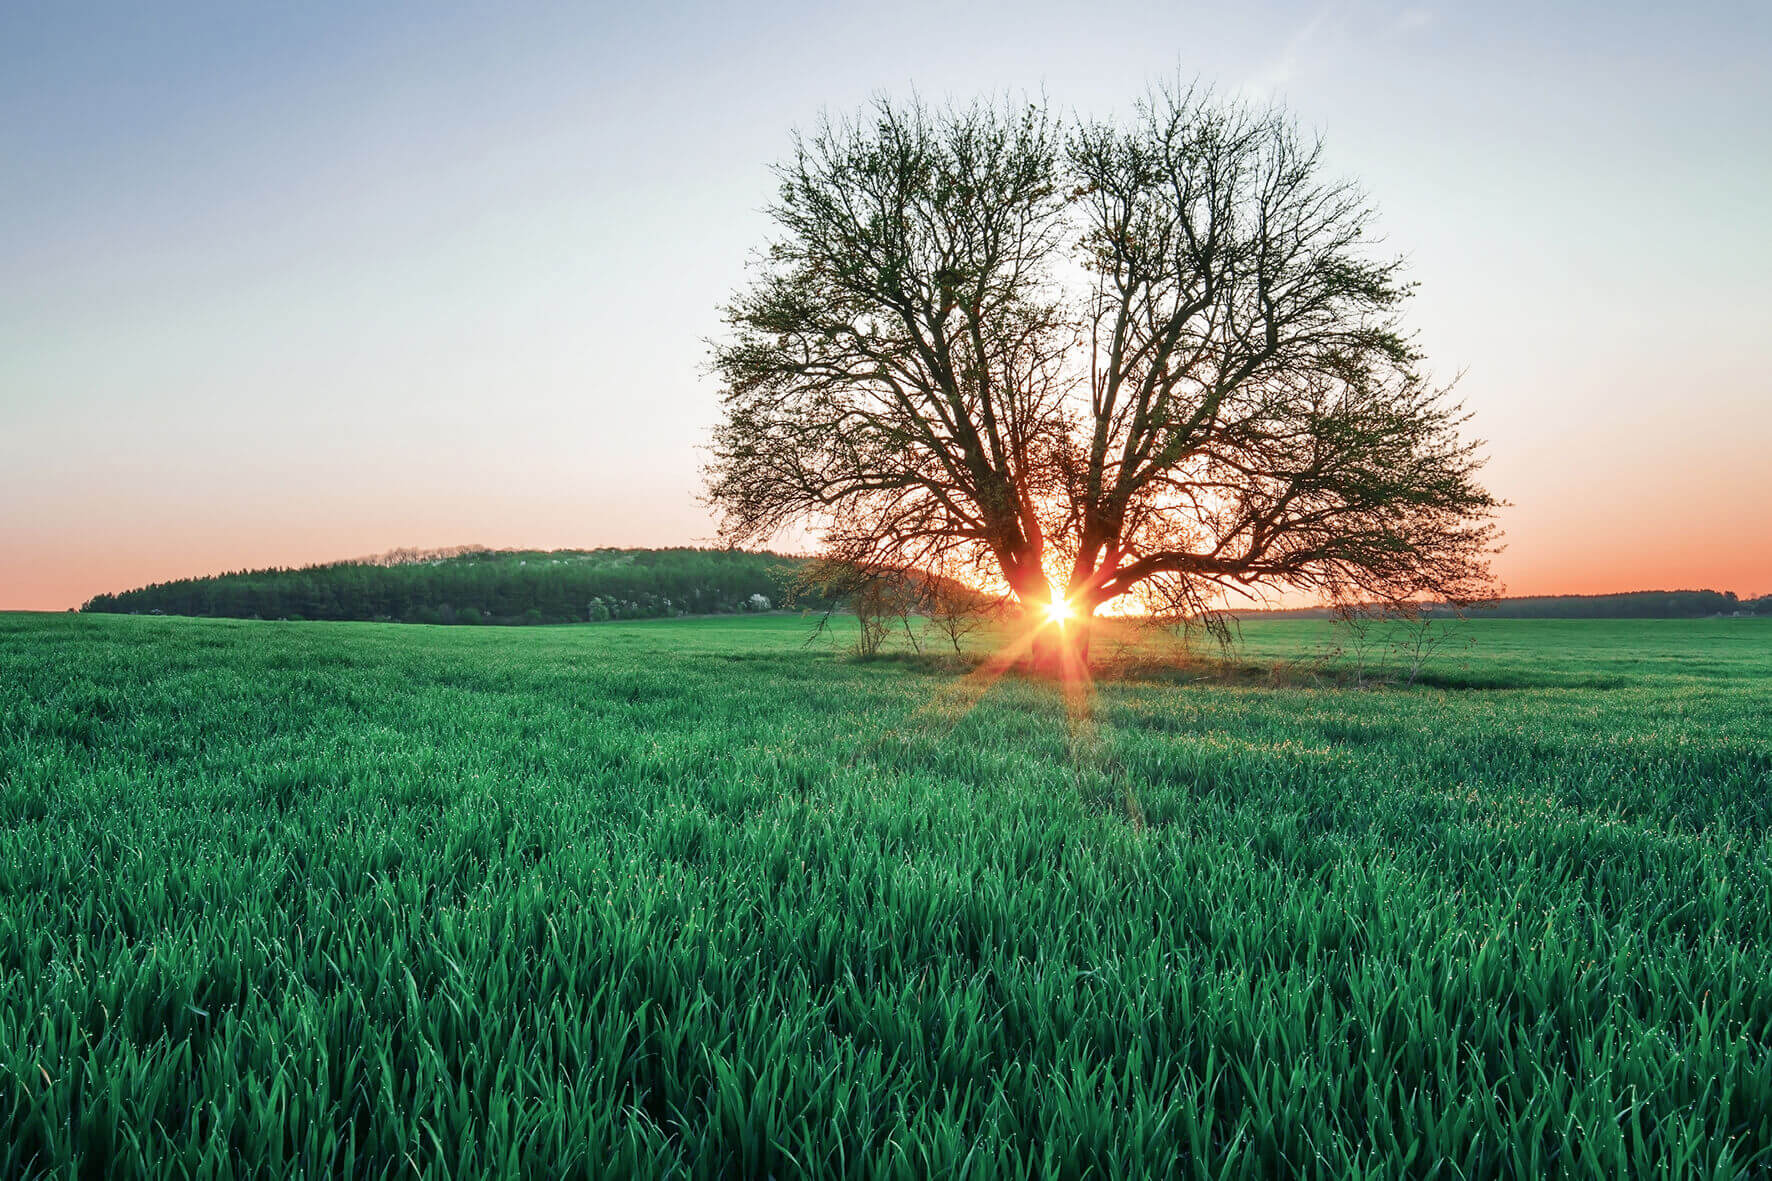 Rural landscape with a large tree and the sun setting in the background